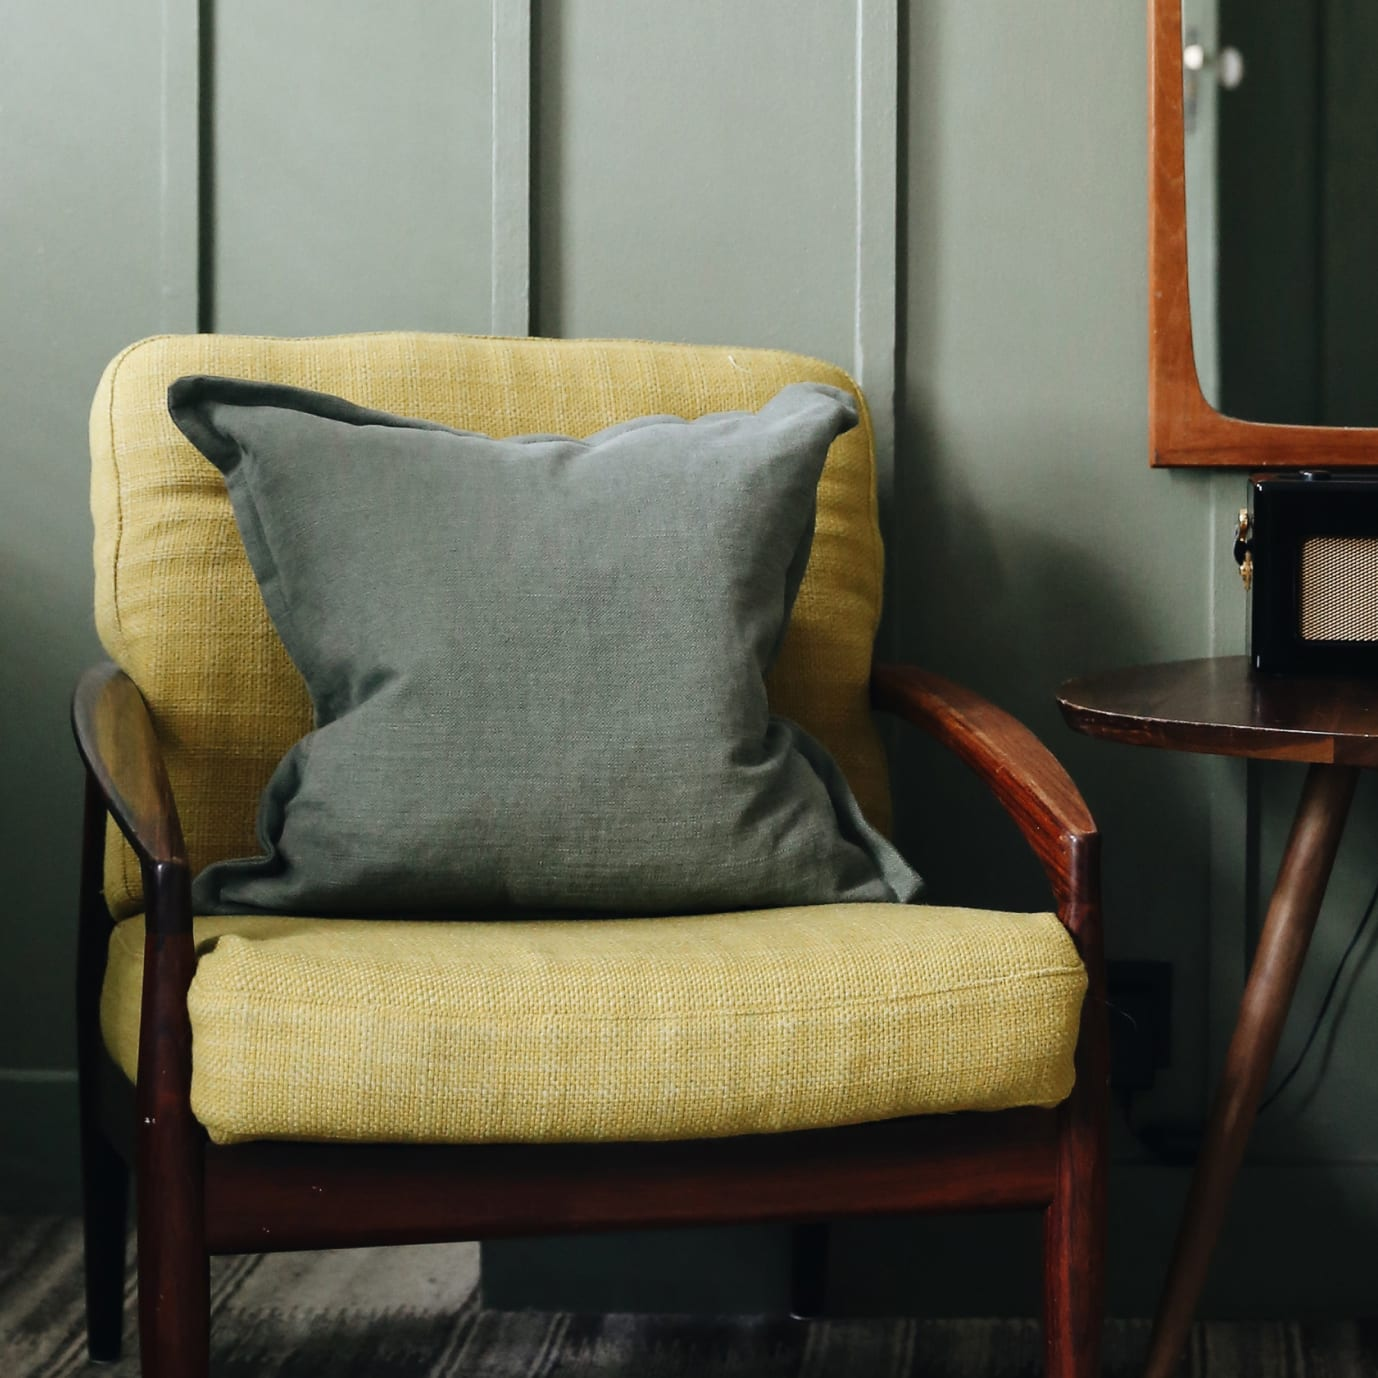 A yellow armchair with a cushion on it.